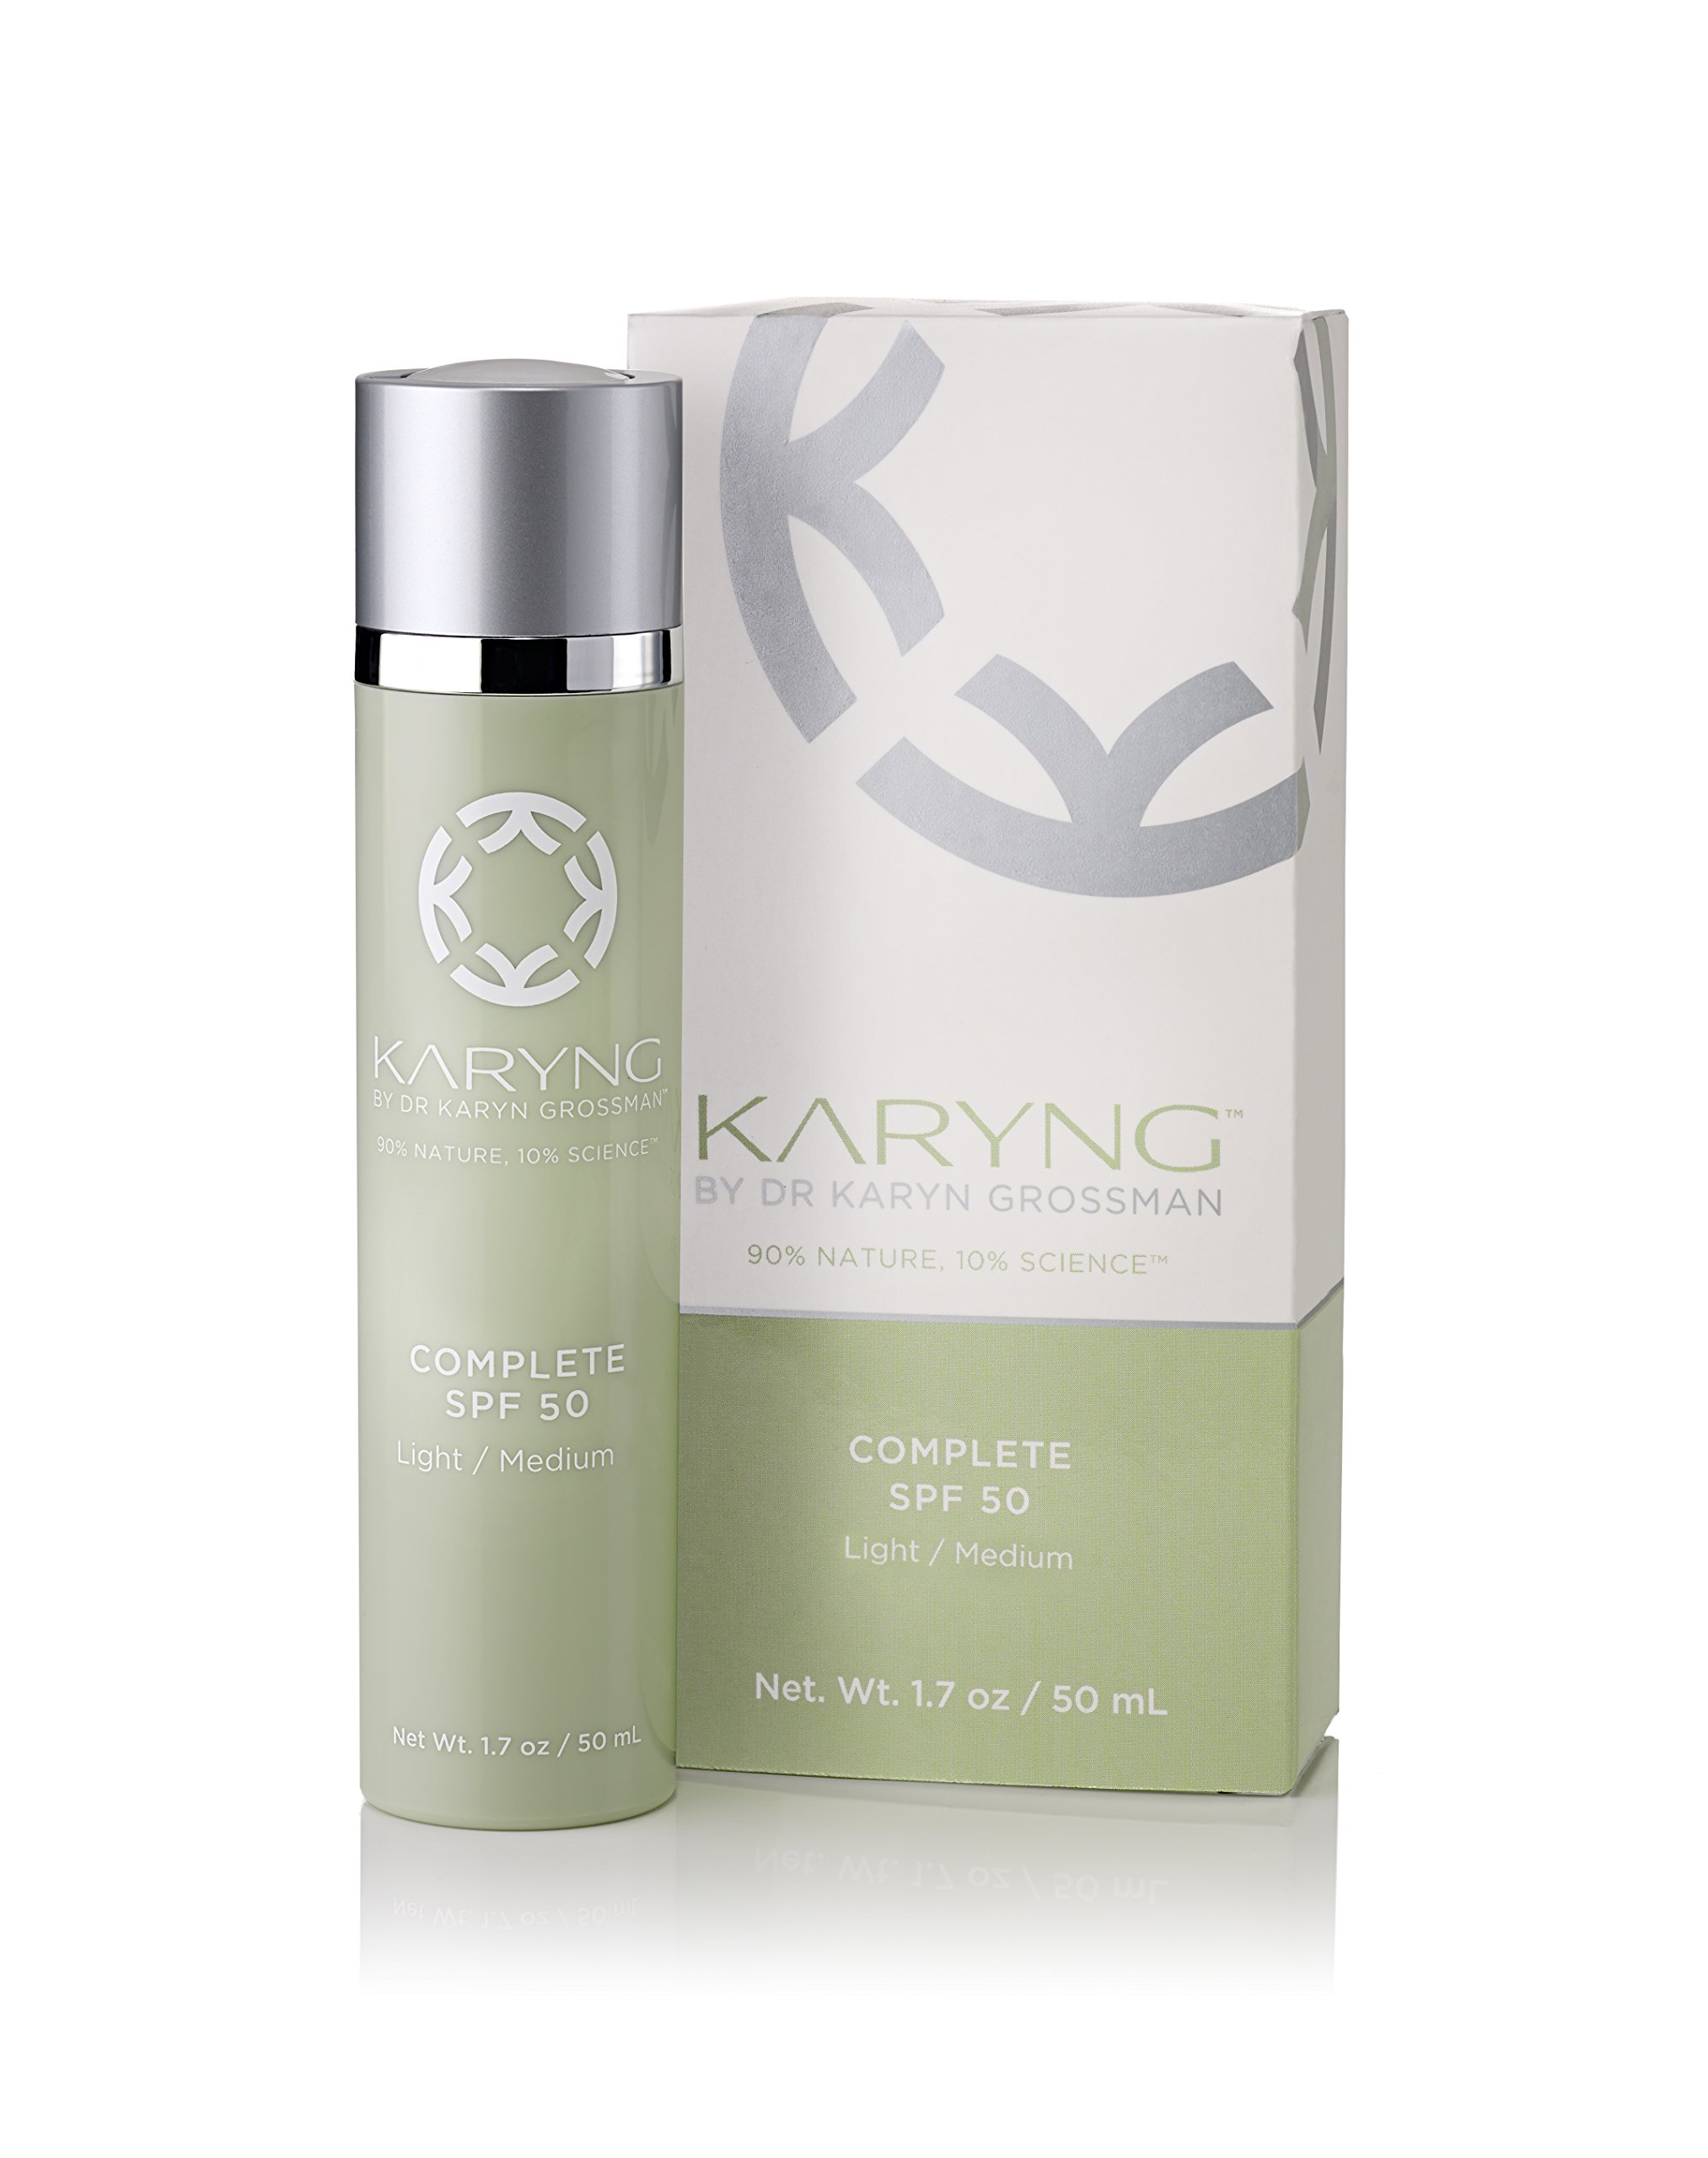 SPF50 Facial & Skin Moisturizer and Makeup Primer by KARYNG - Complete Broad Spectrum with Echinacea, Coconut Oil, and Pro-Verte Complex - Tinted Daily Face Lotion (Light/Medium) - 1.7oz